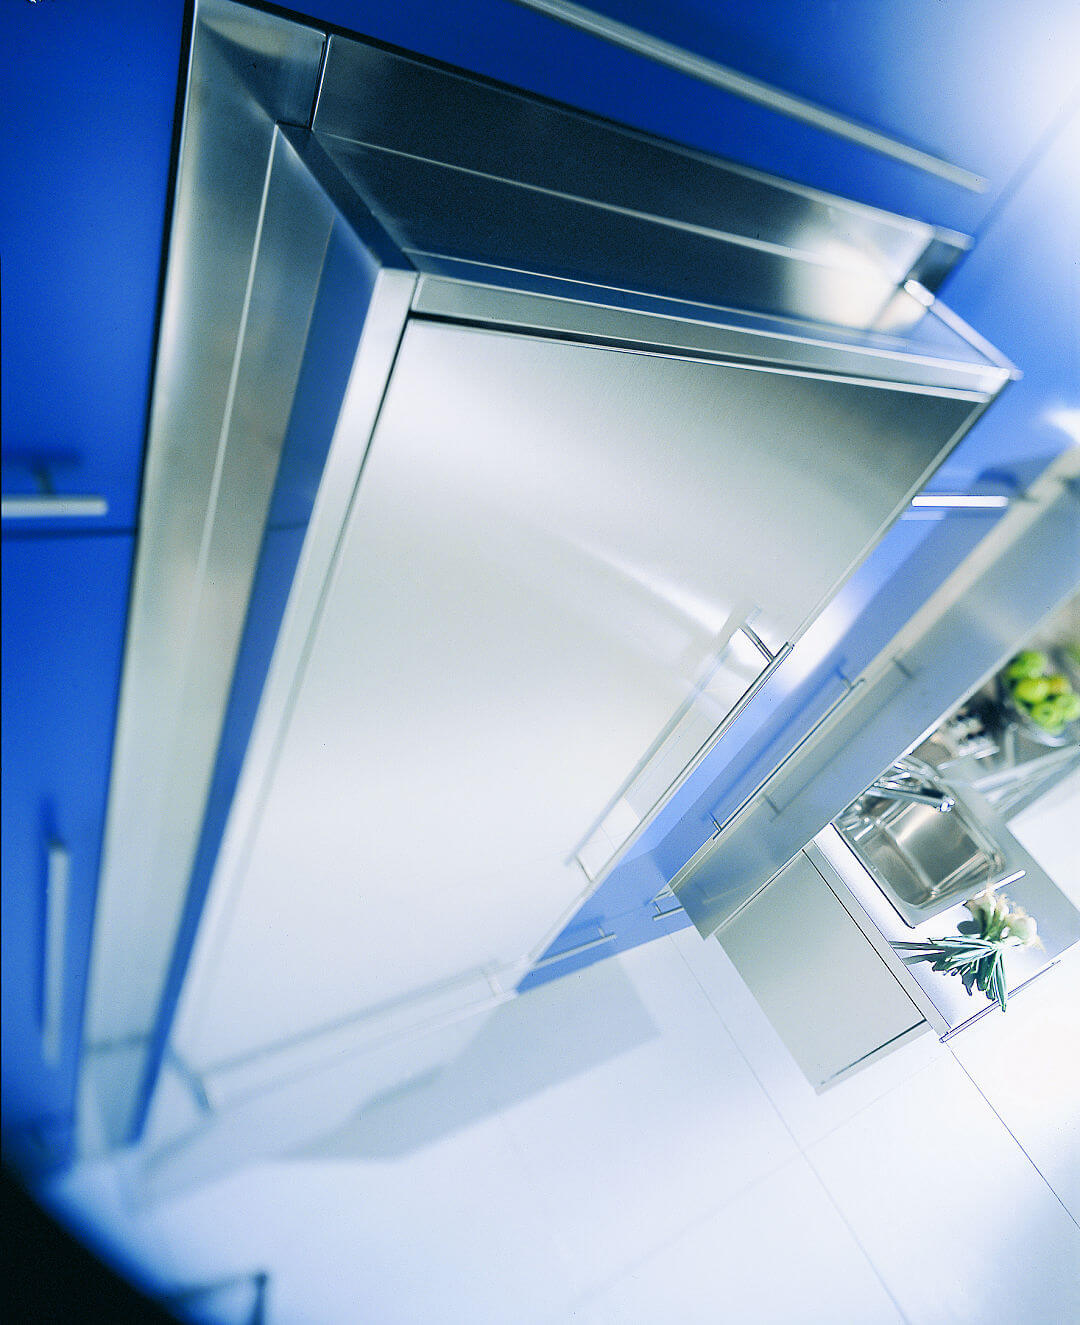 Arca Cucine Italy - Domestic stainless steel kitchens - Wall - Fridge